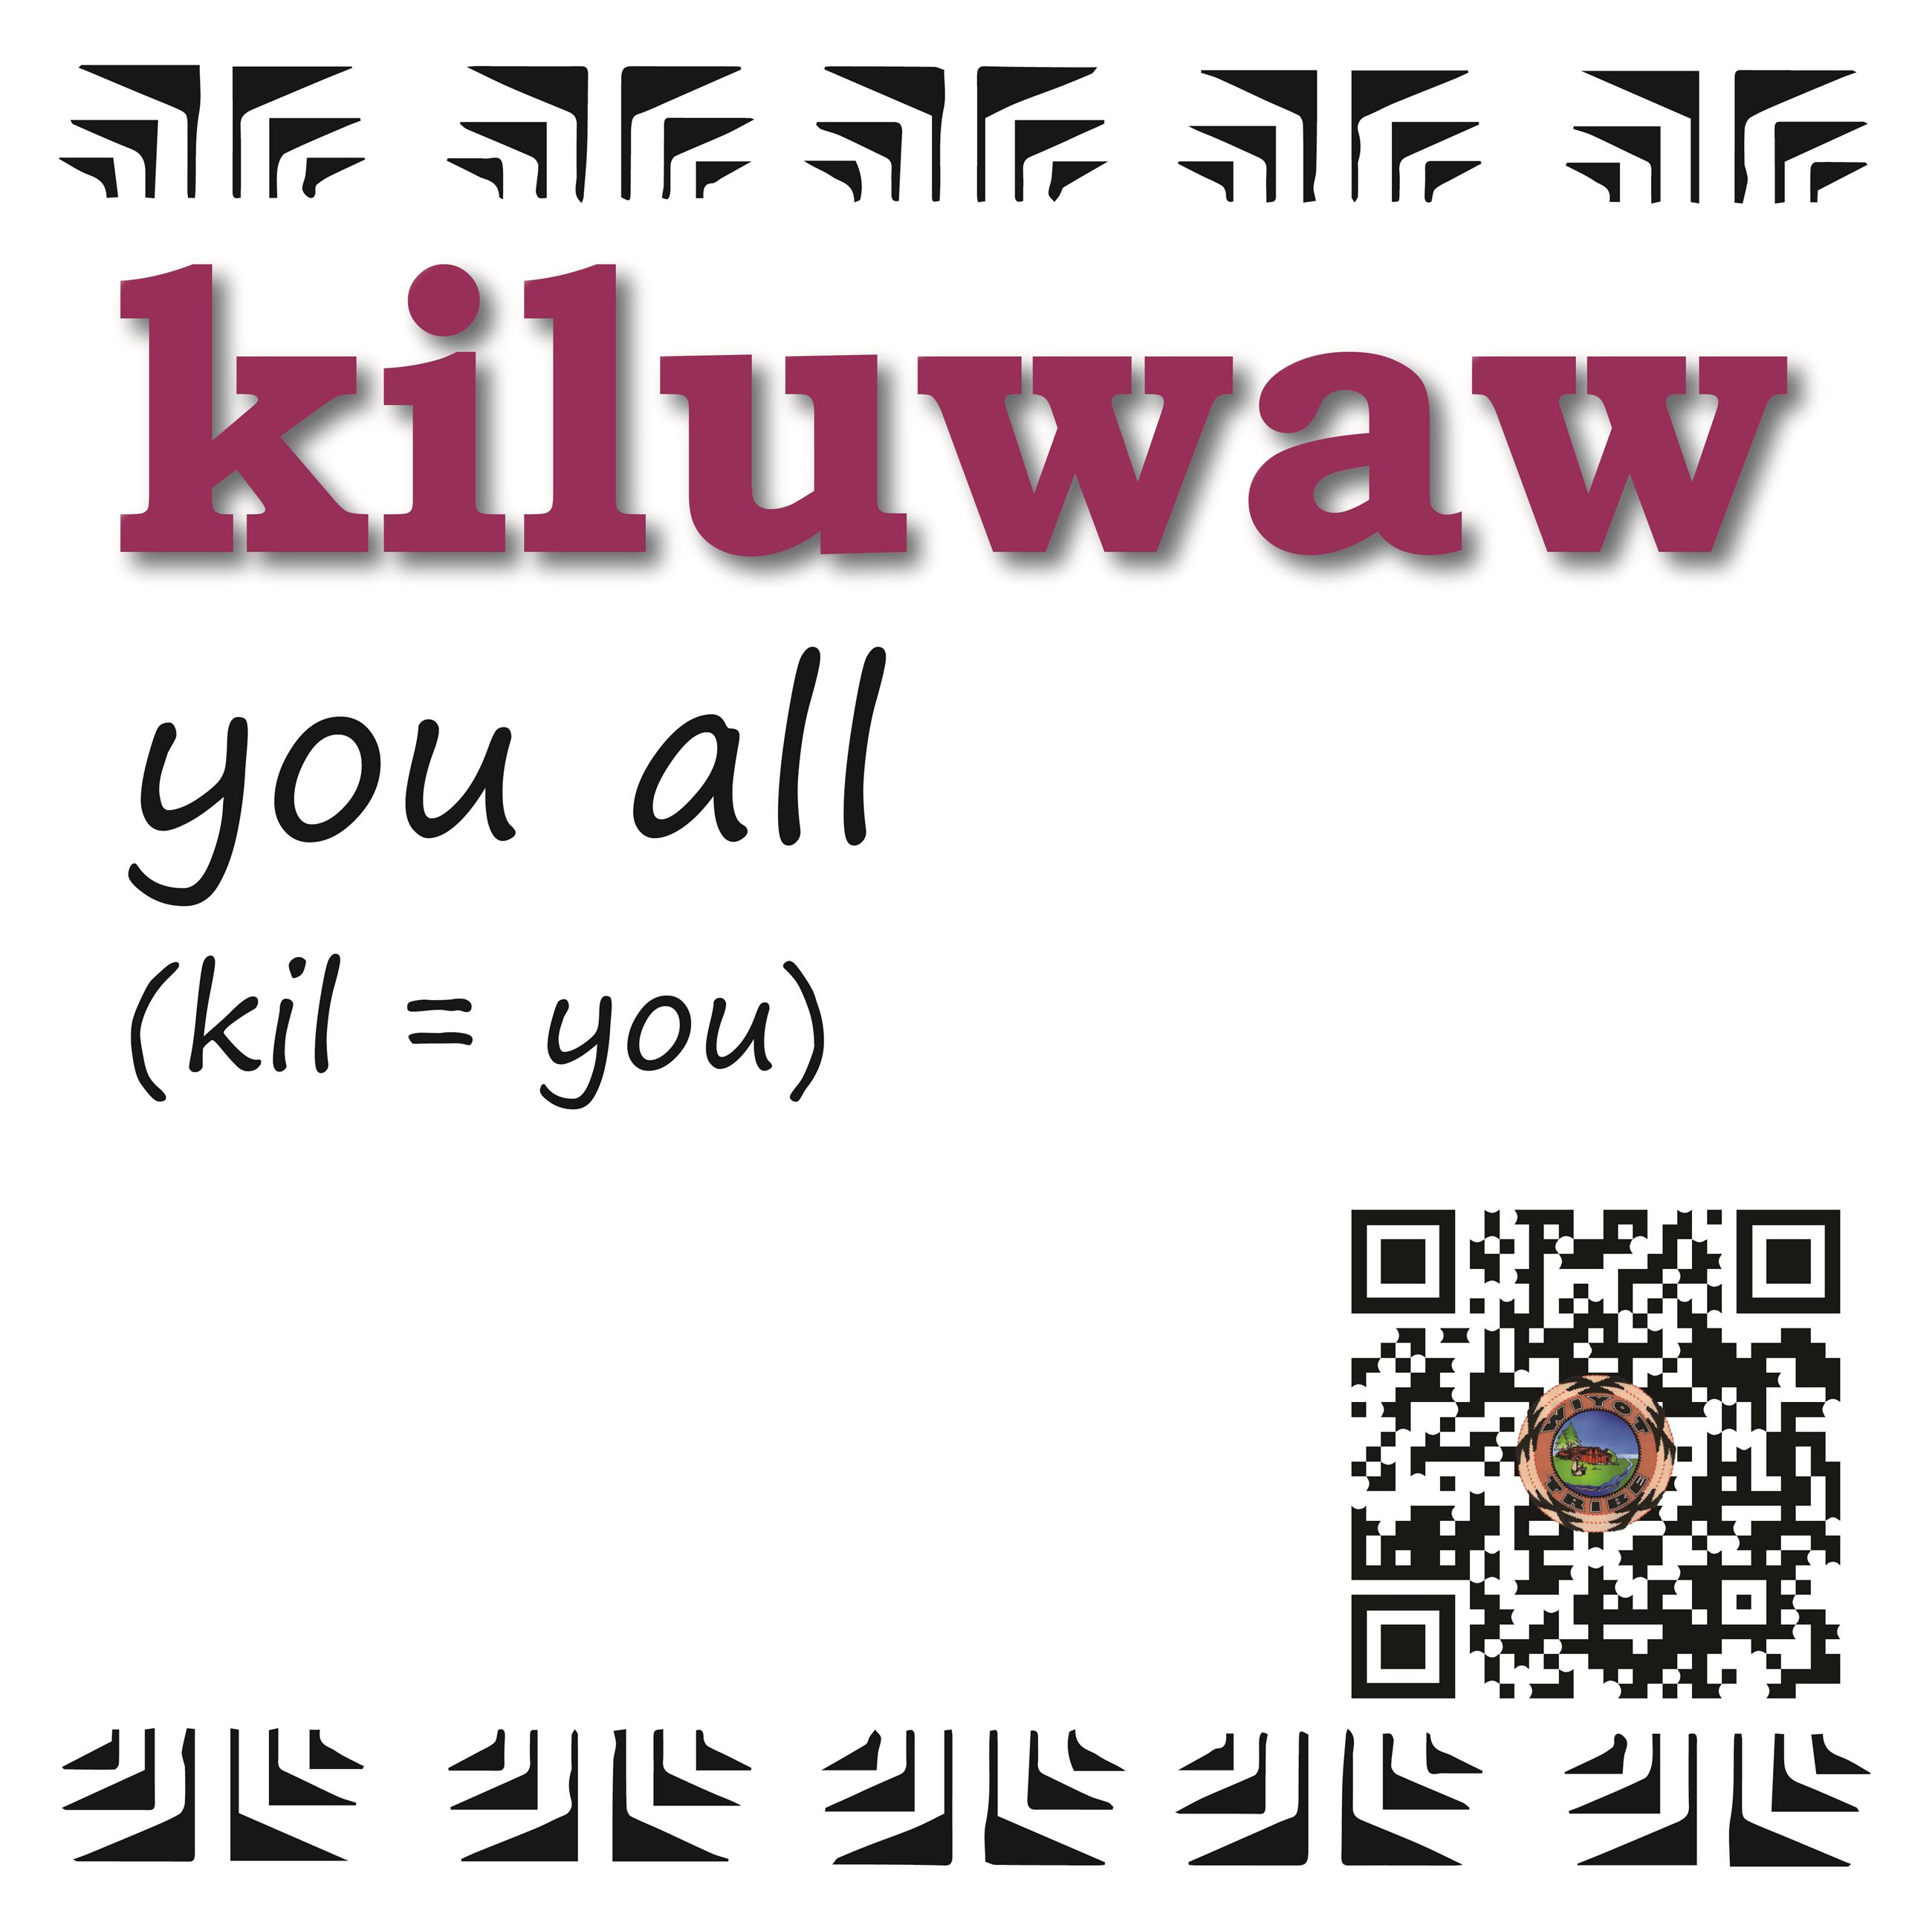 kiluwaw (you all)